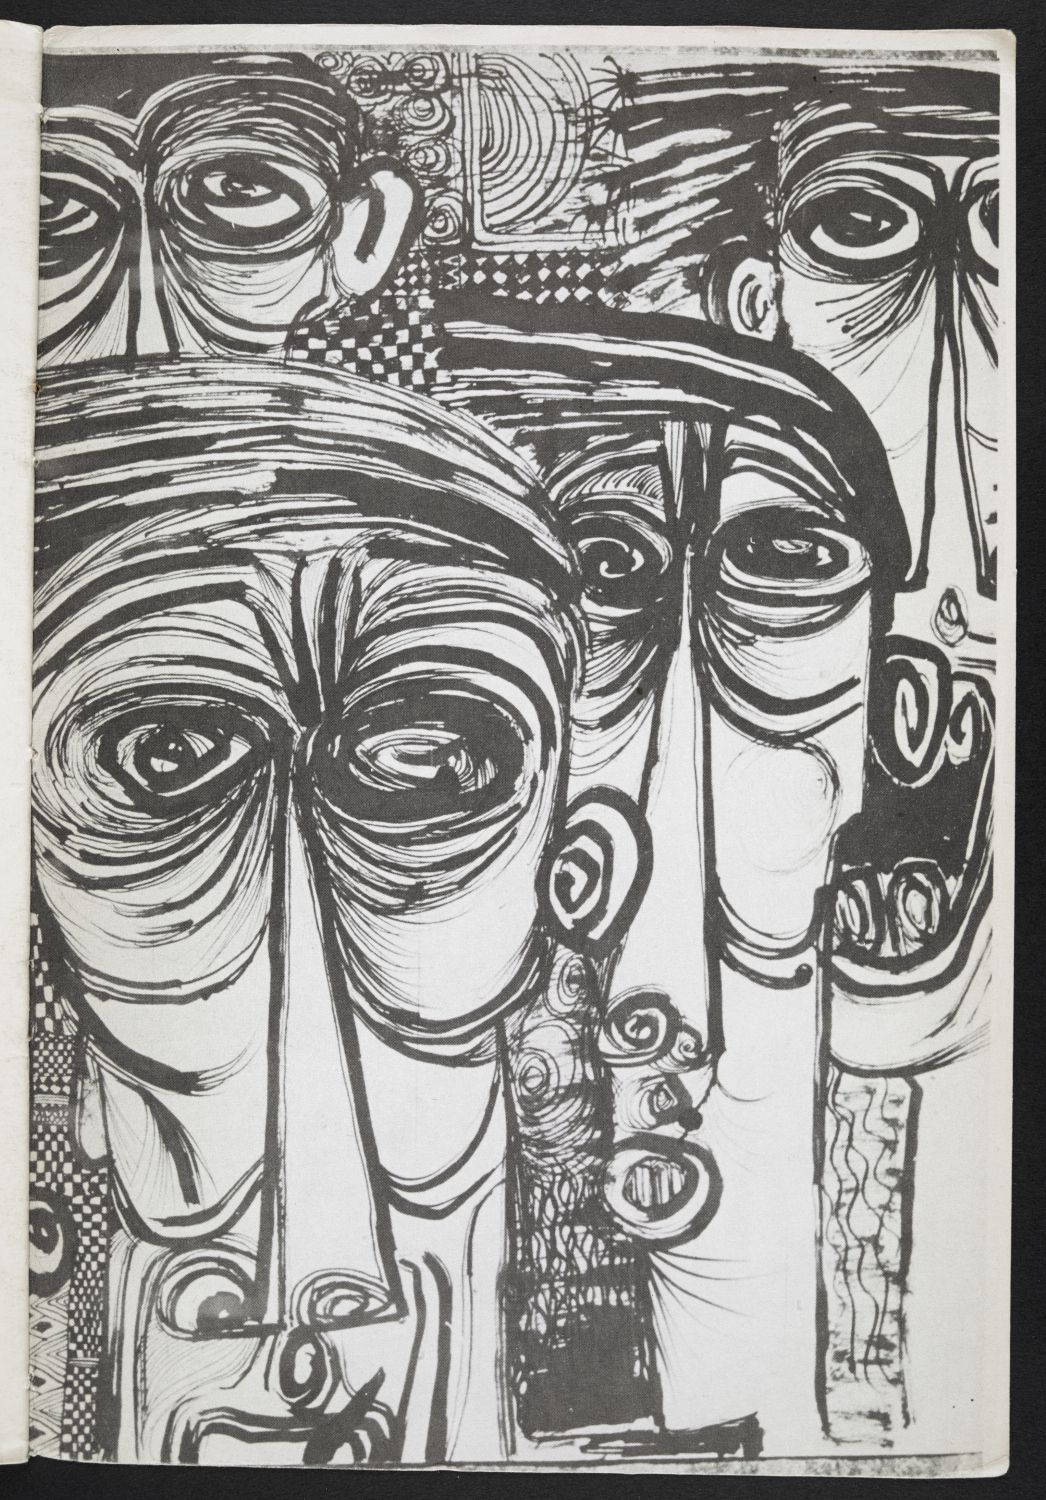 Early artwork by Ibrahim El-Salahi within a 60's Mbari Club pamphlet (c) Ibrahim El-Salahi